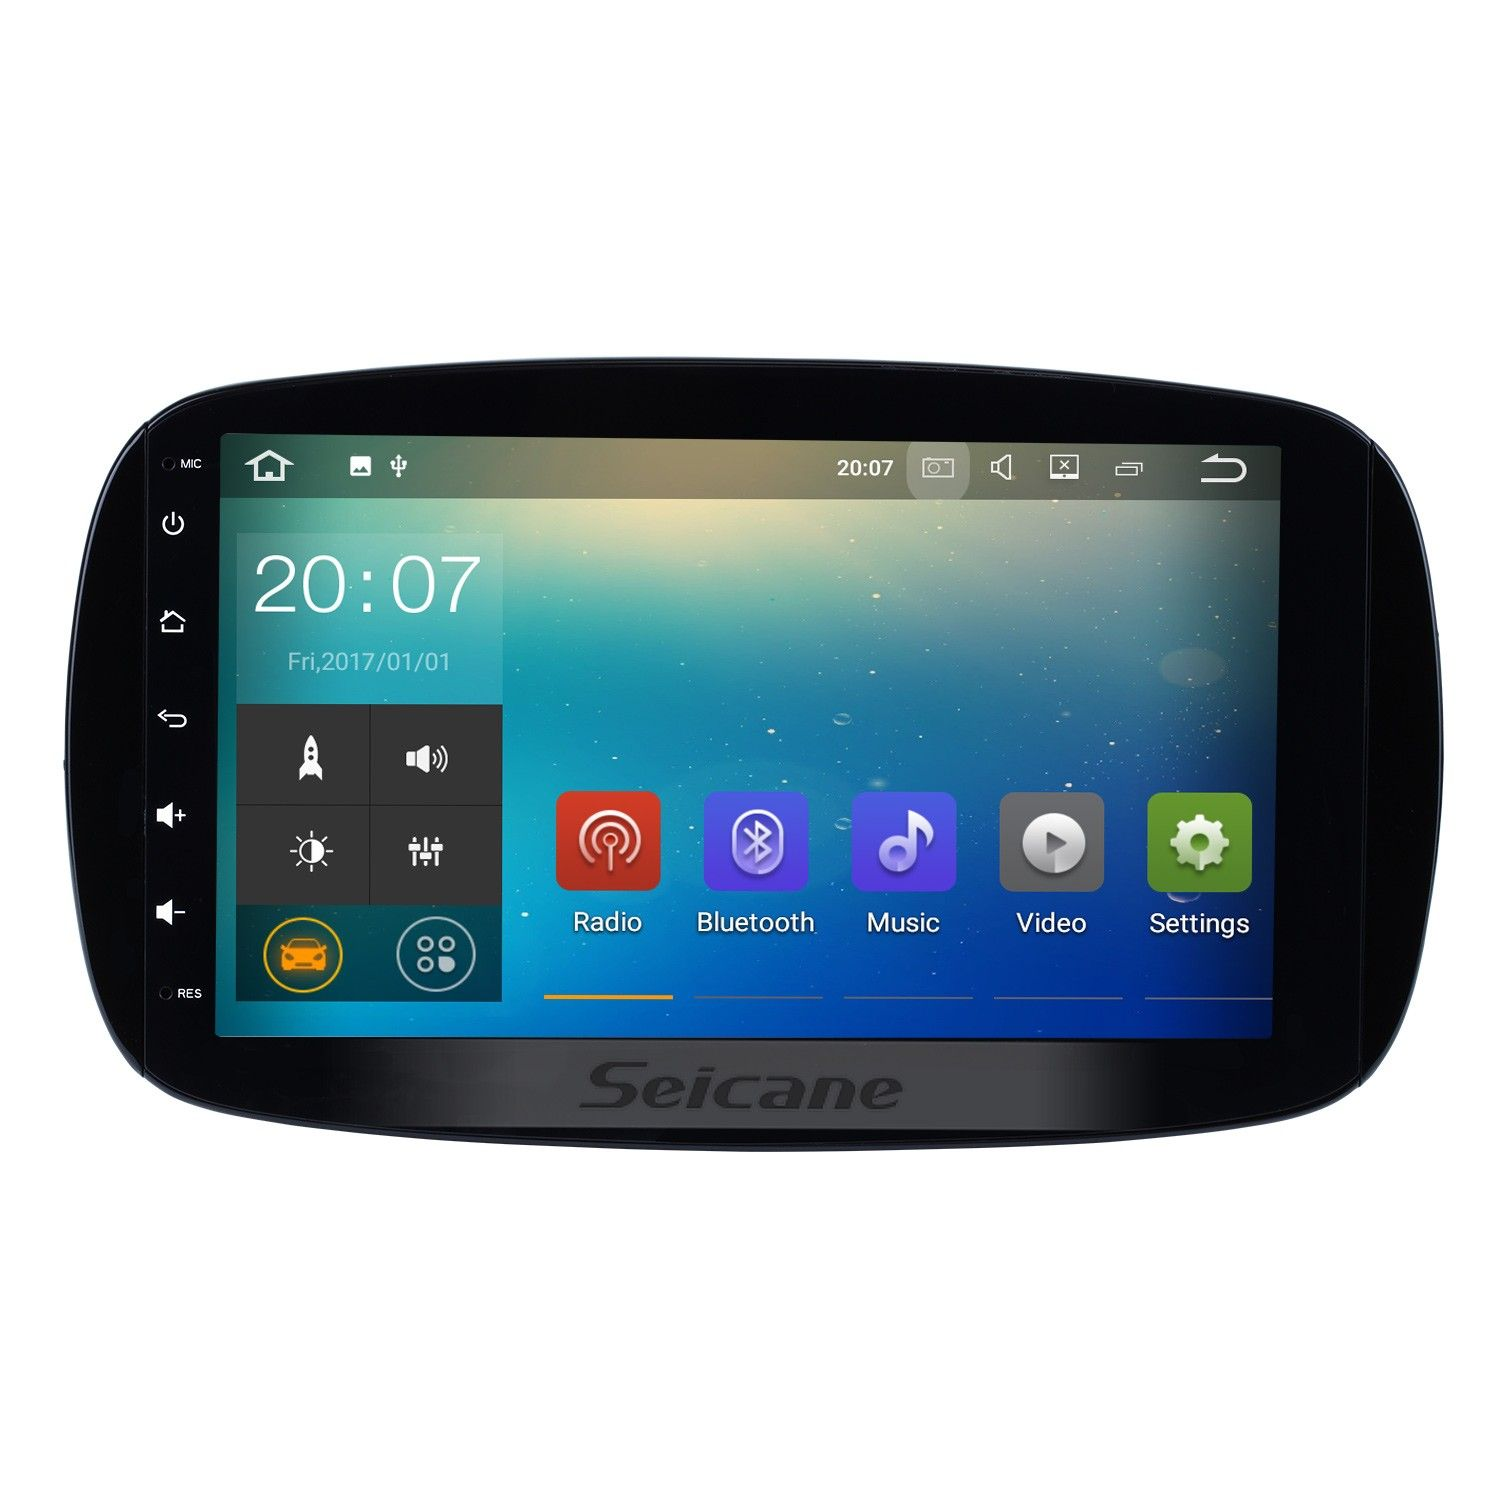 Seicane 9 Inch Android 7 1 Hd 1024 600 Touchscreen Radio For 2017 2016 Mercedes